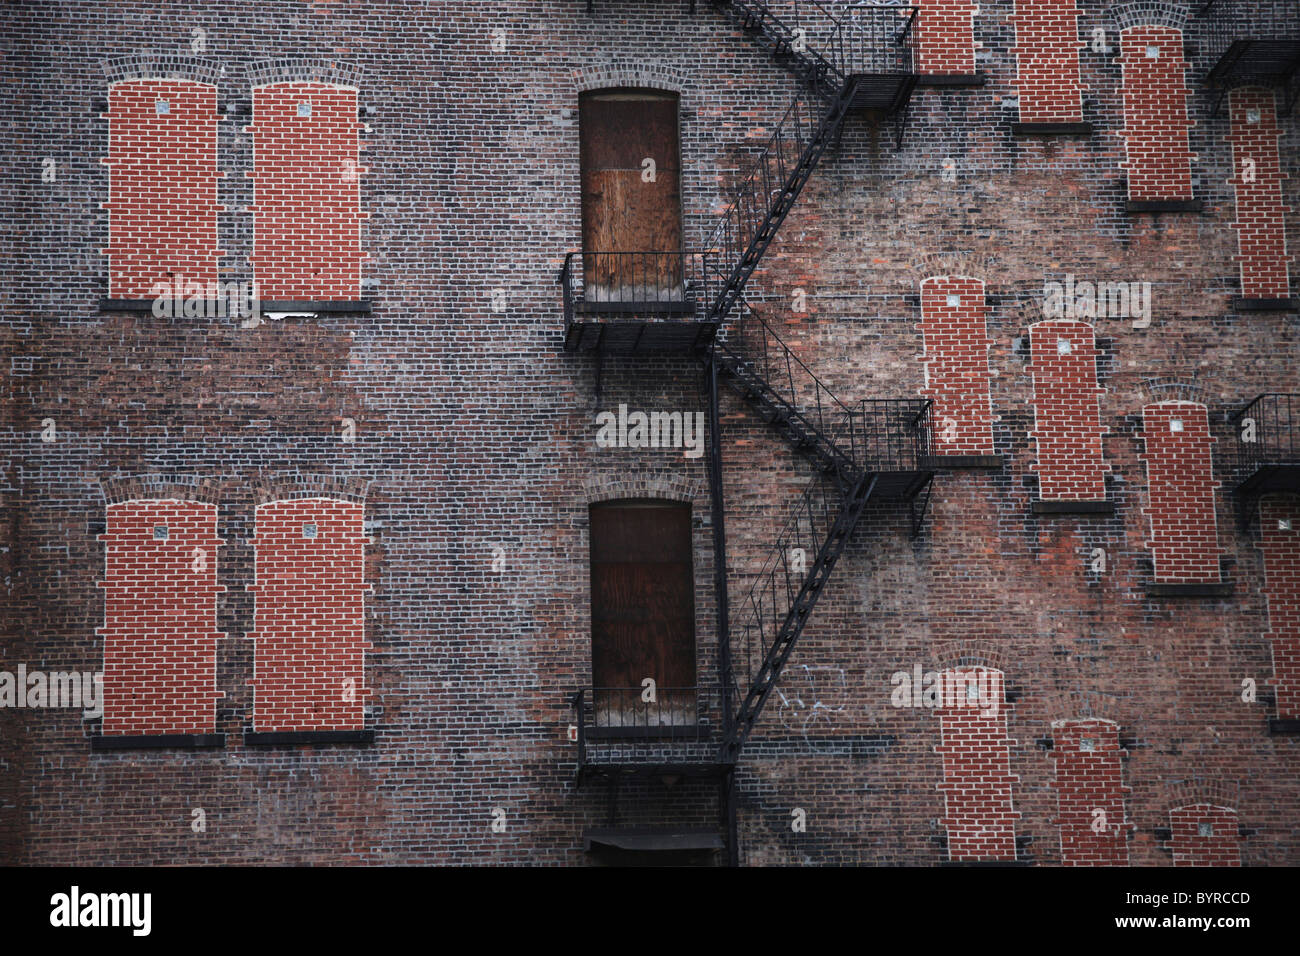 A Fire Escape Going Up The Side Of Brick Building Manhattan New York City United States America